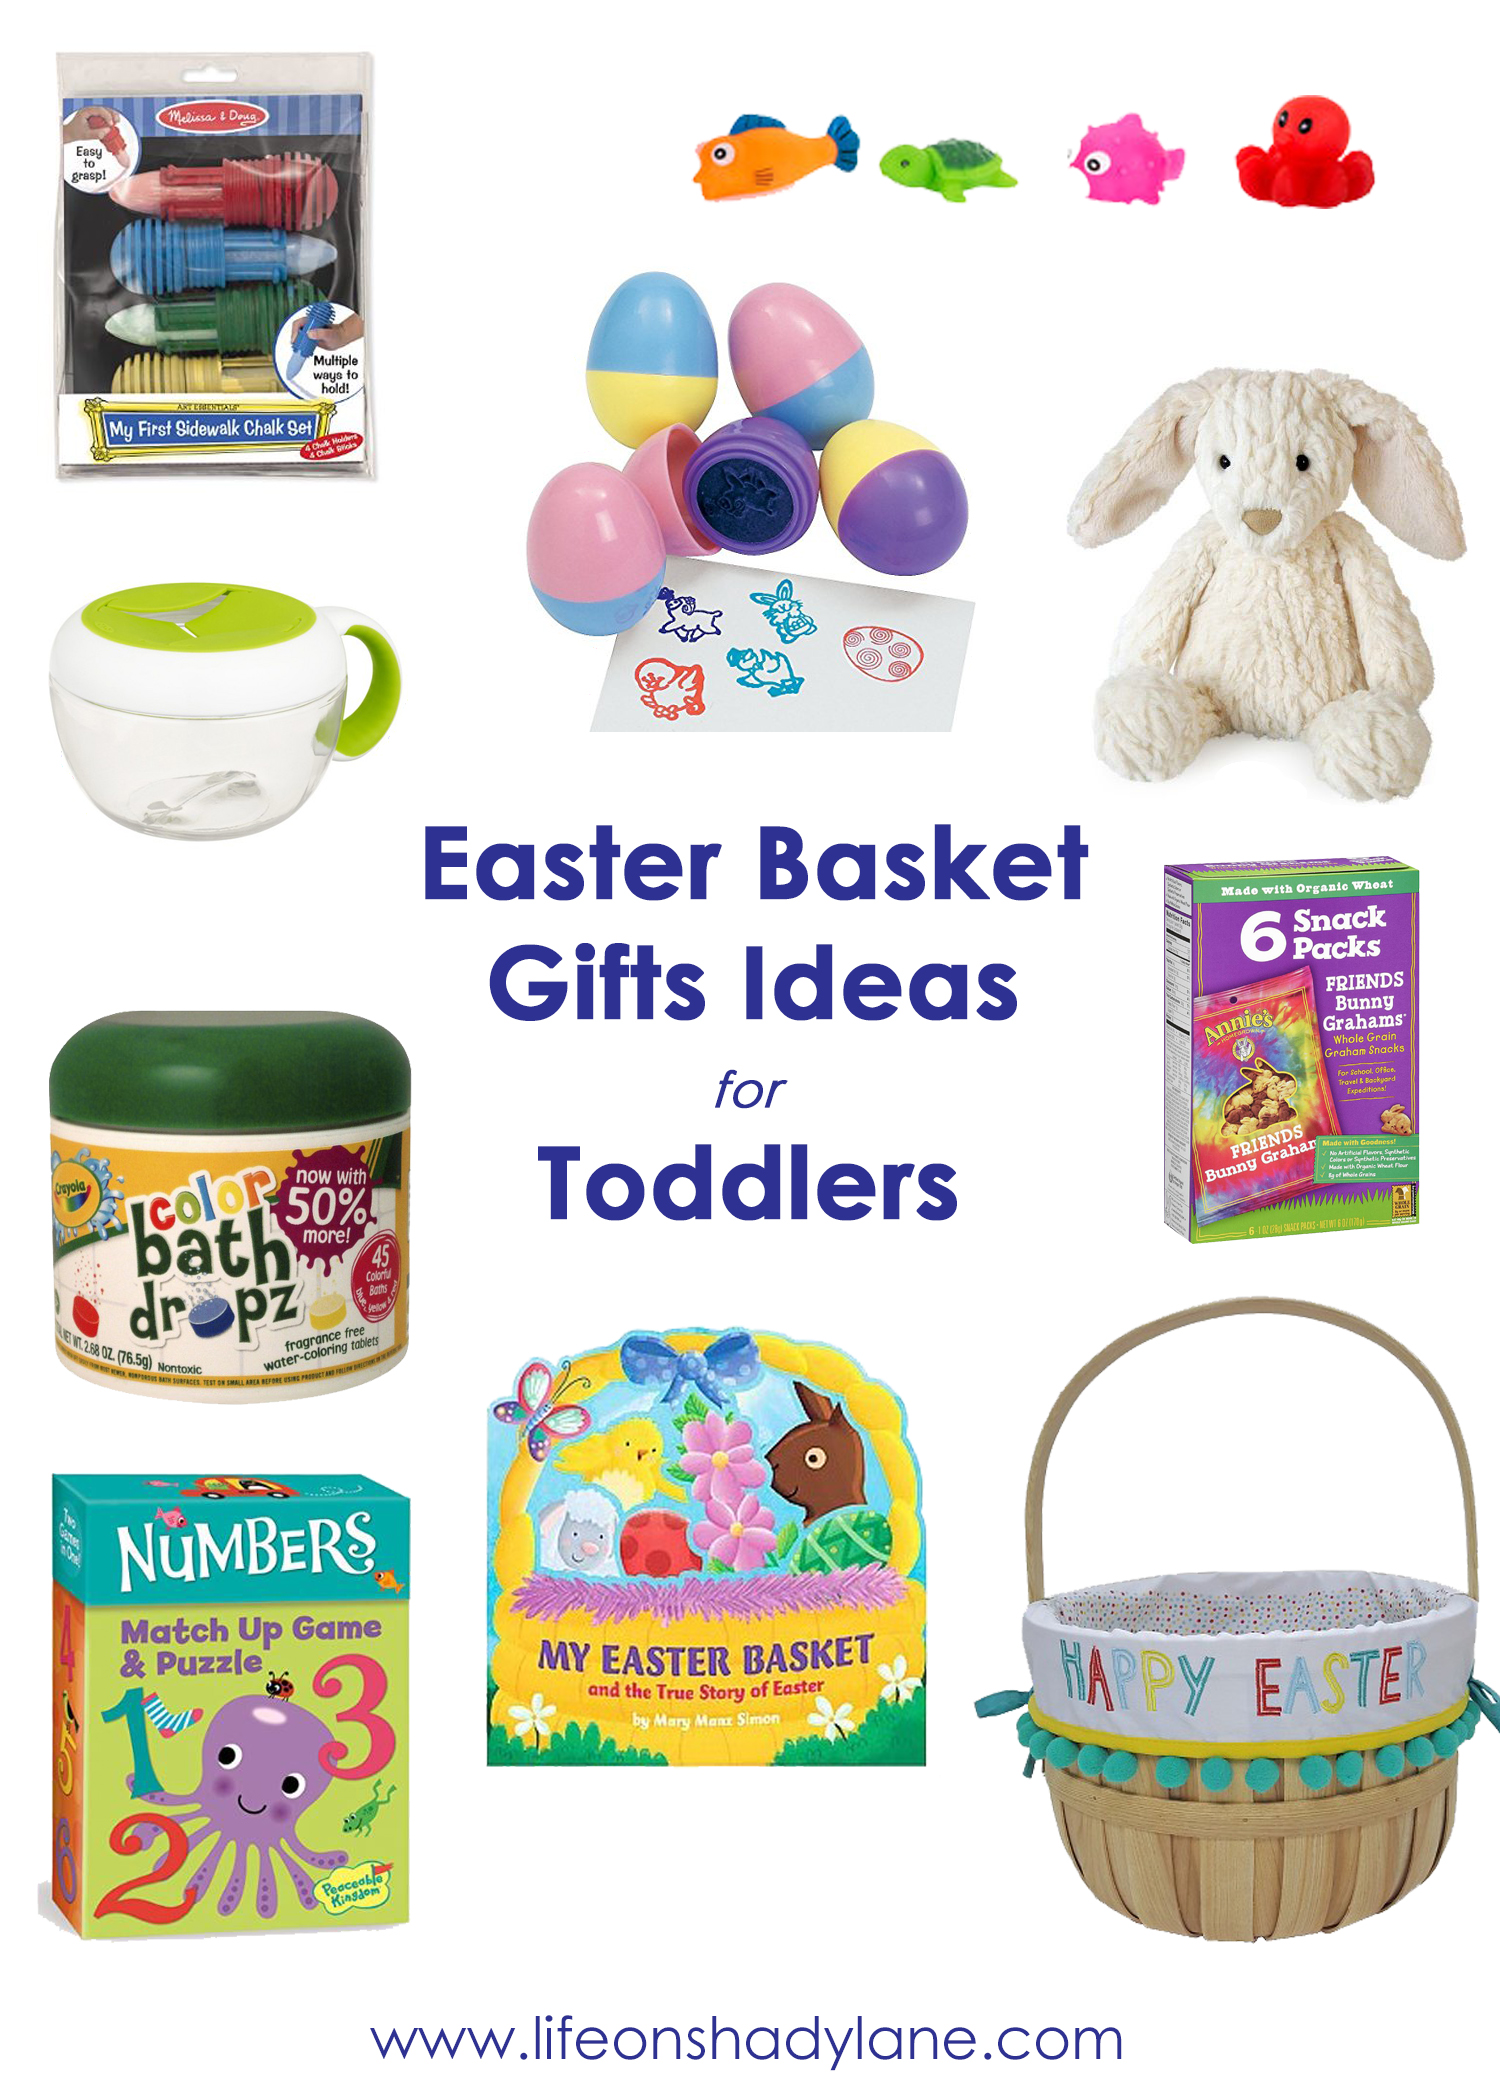 Easter basket gift ideas for toddlers life on shady lane easter basket gift ideas for toddlers via life on shady lane blog negle Choice Image